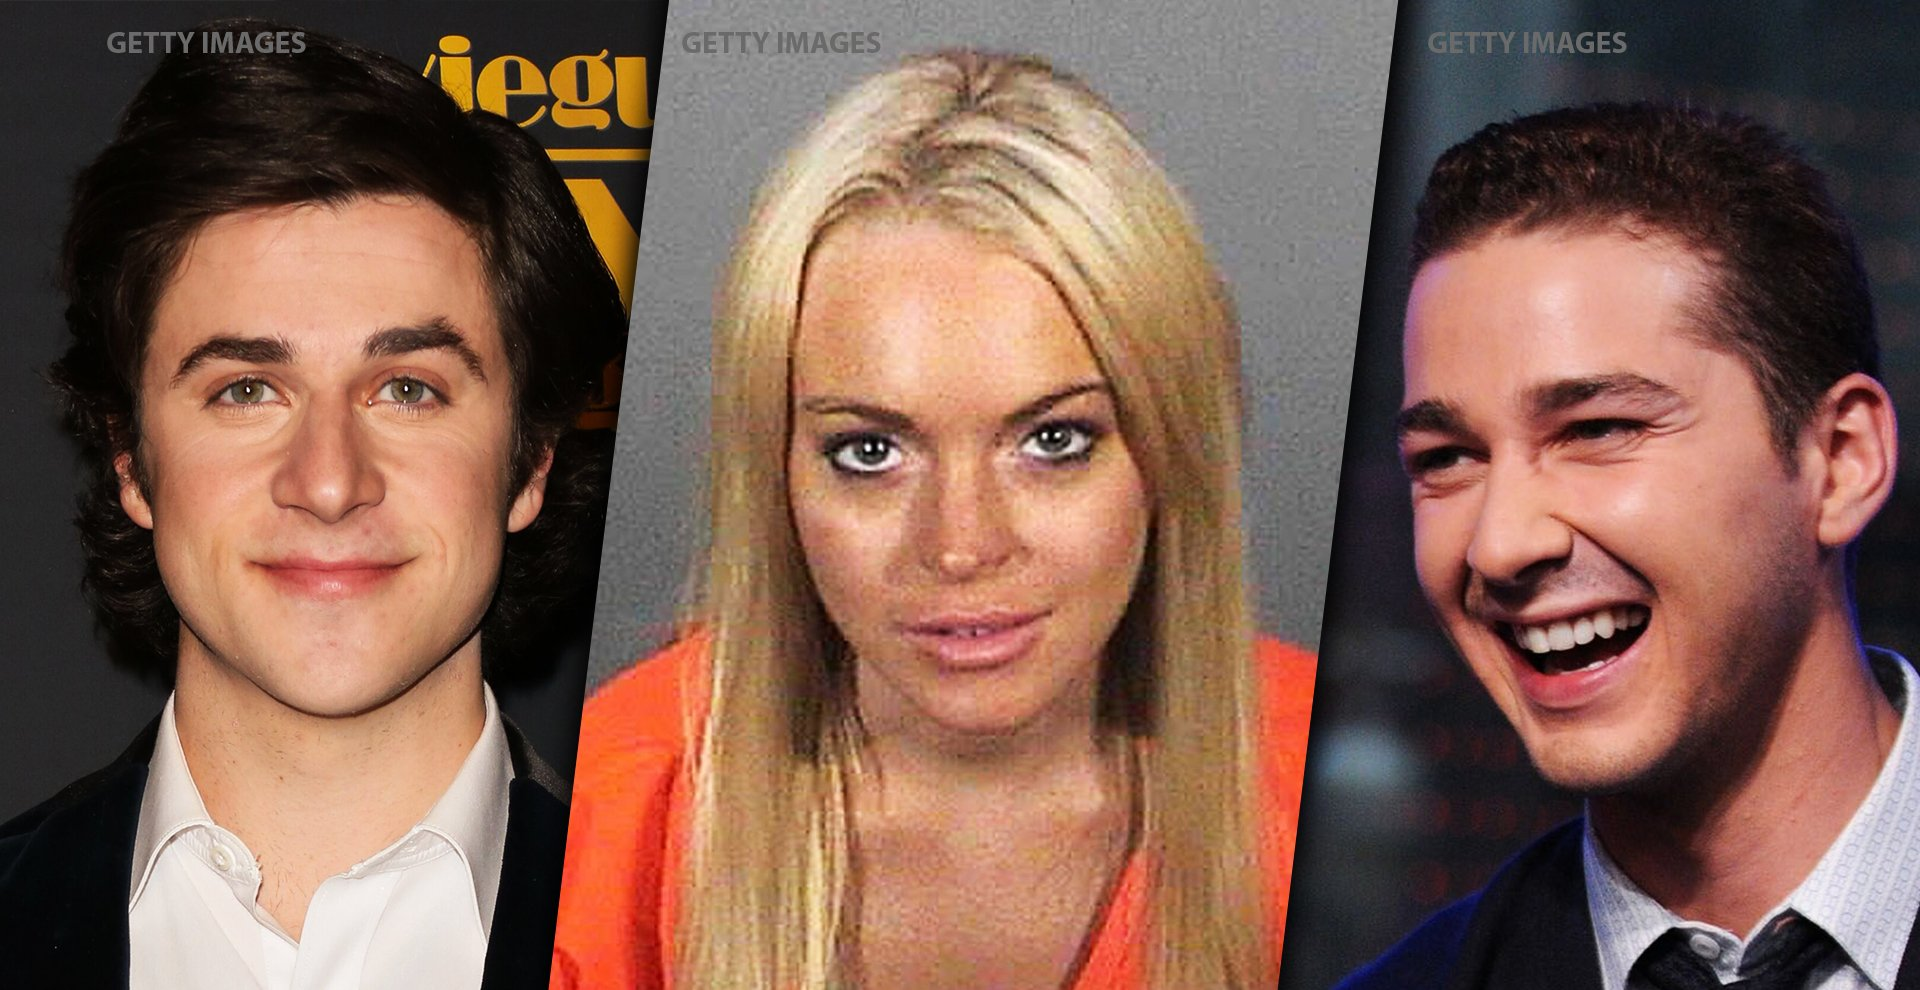 9 Former Disney Stars Who Got in Trouble With The Law